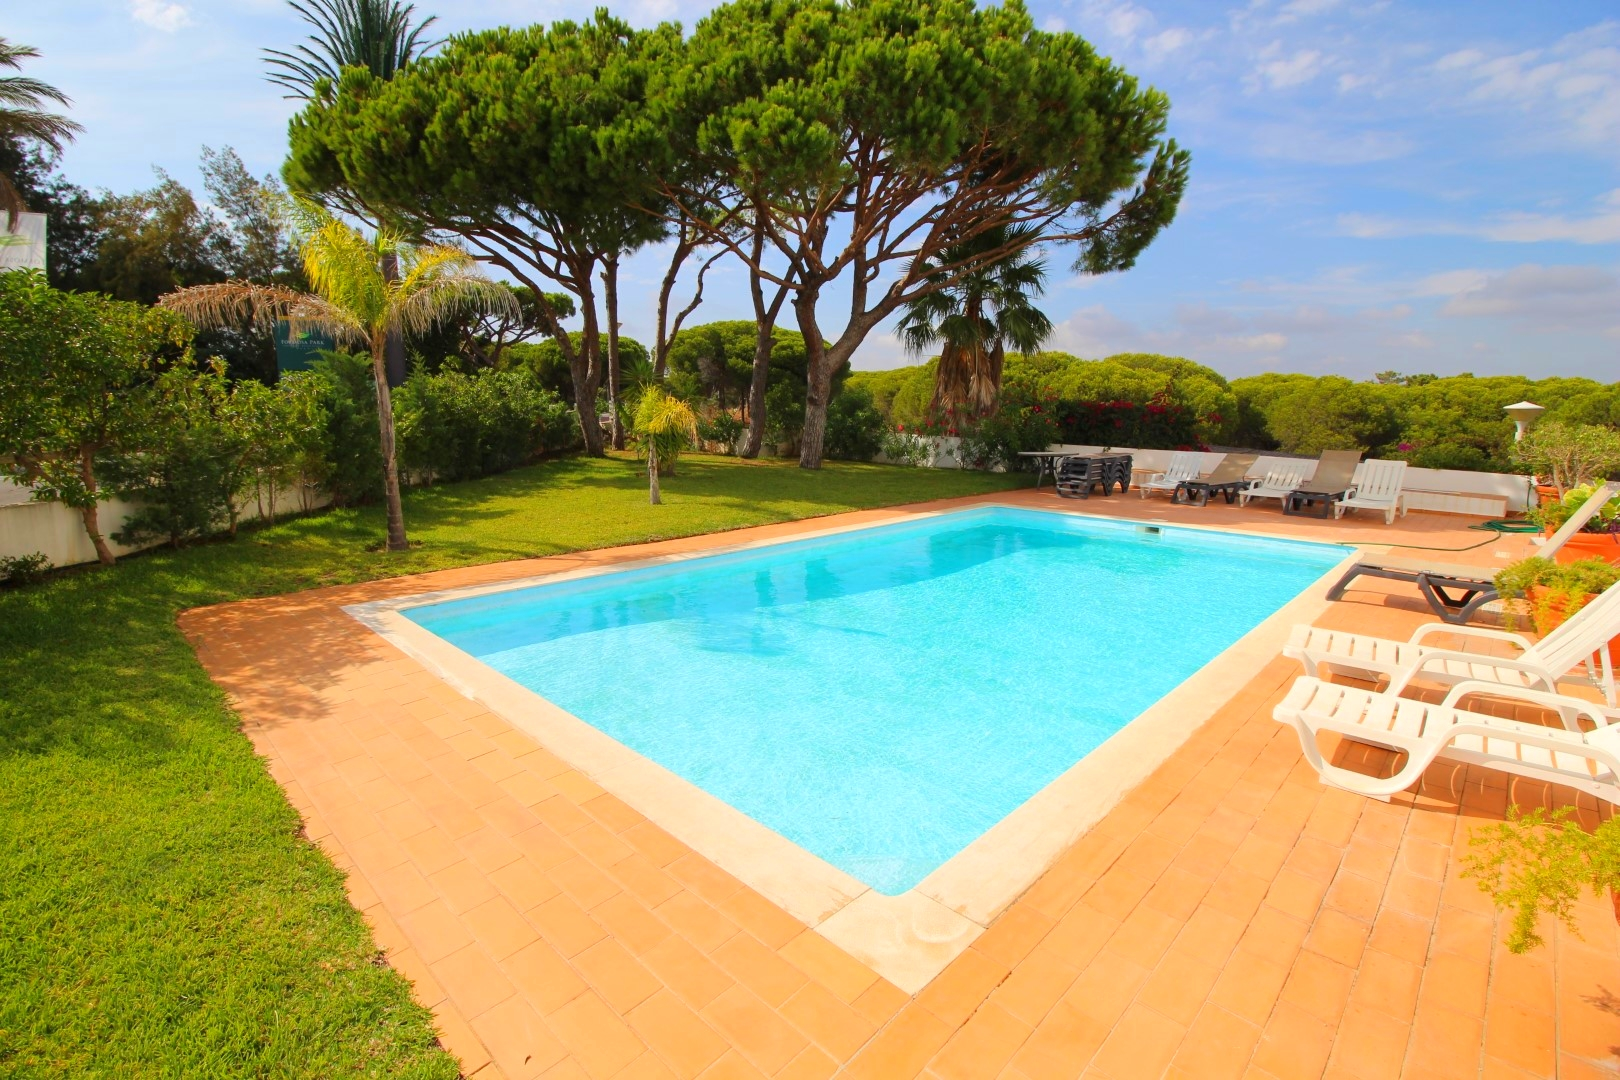 3 Bedroom near Beach between Quinta do Lago and Vale do Lobo